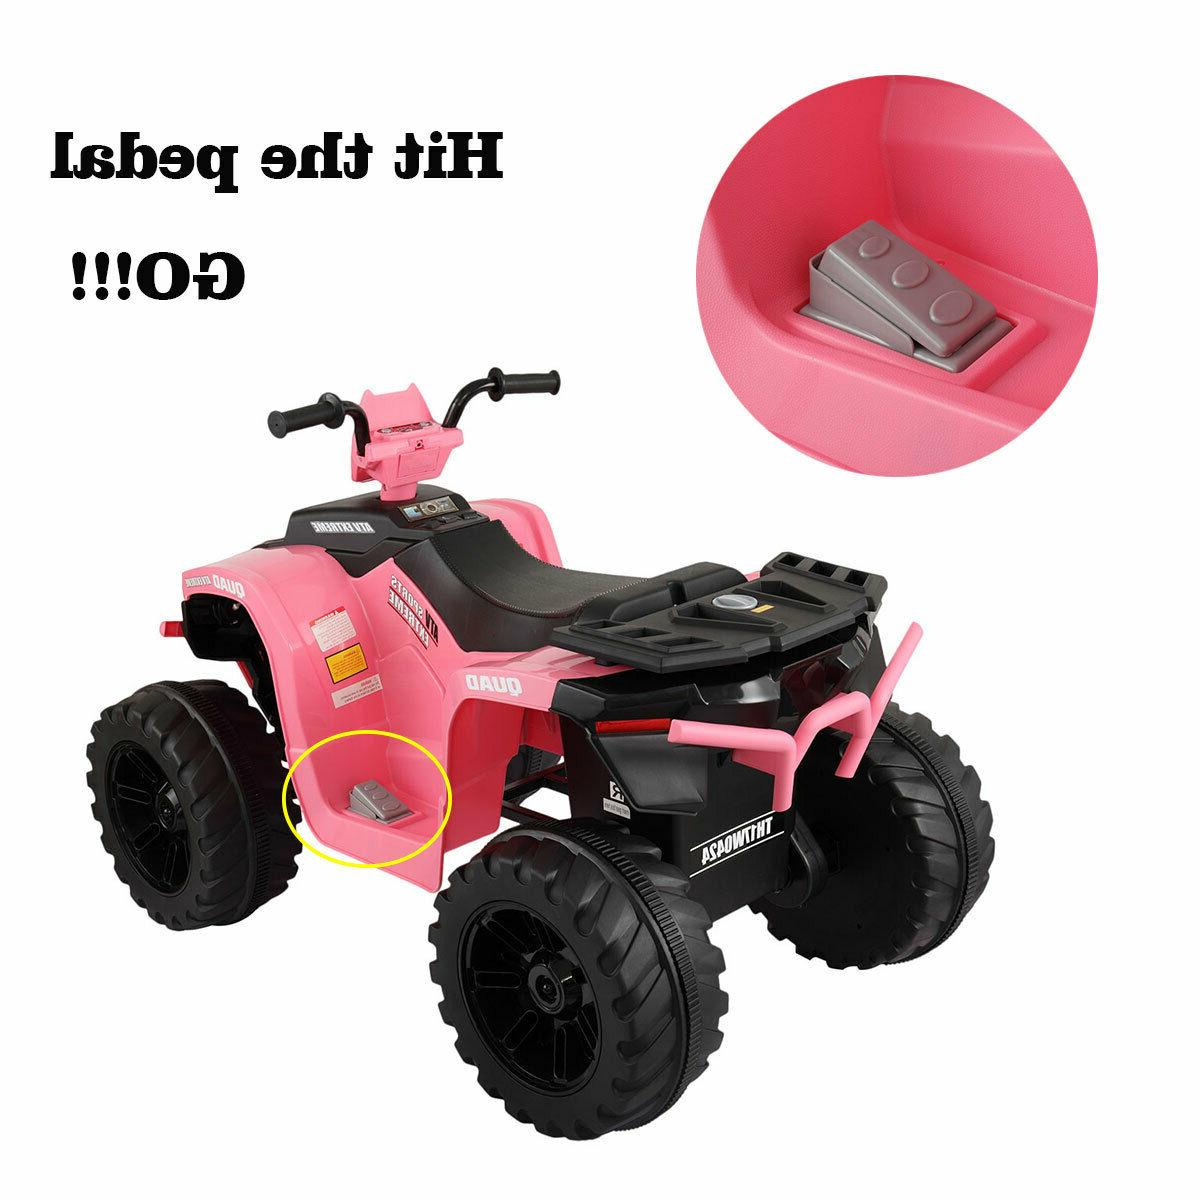 12V Kid ATV 4 Electric Powered Toy W/ Music Pink